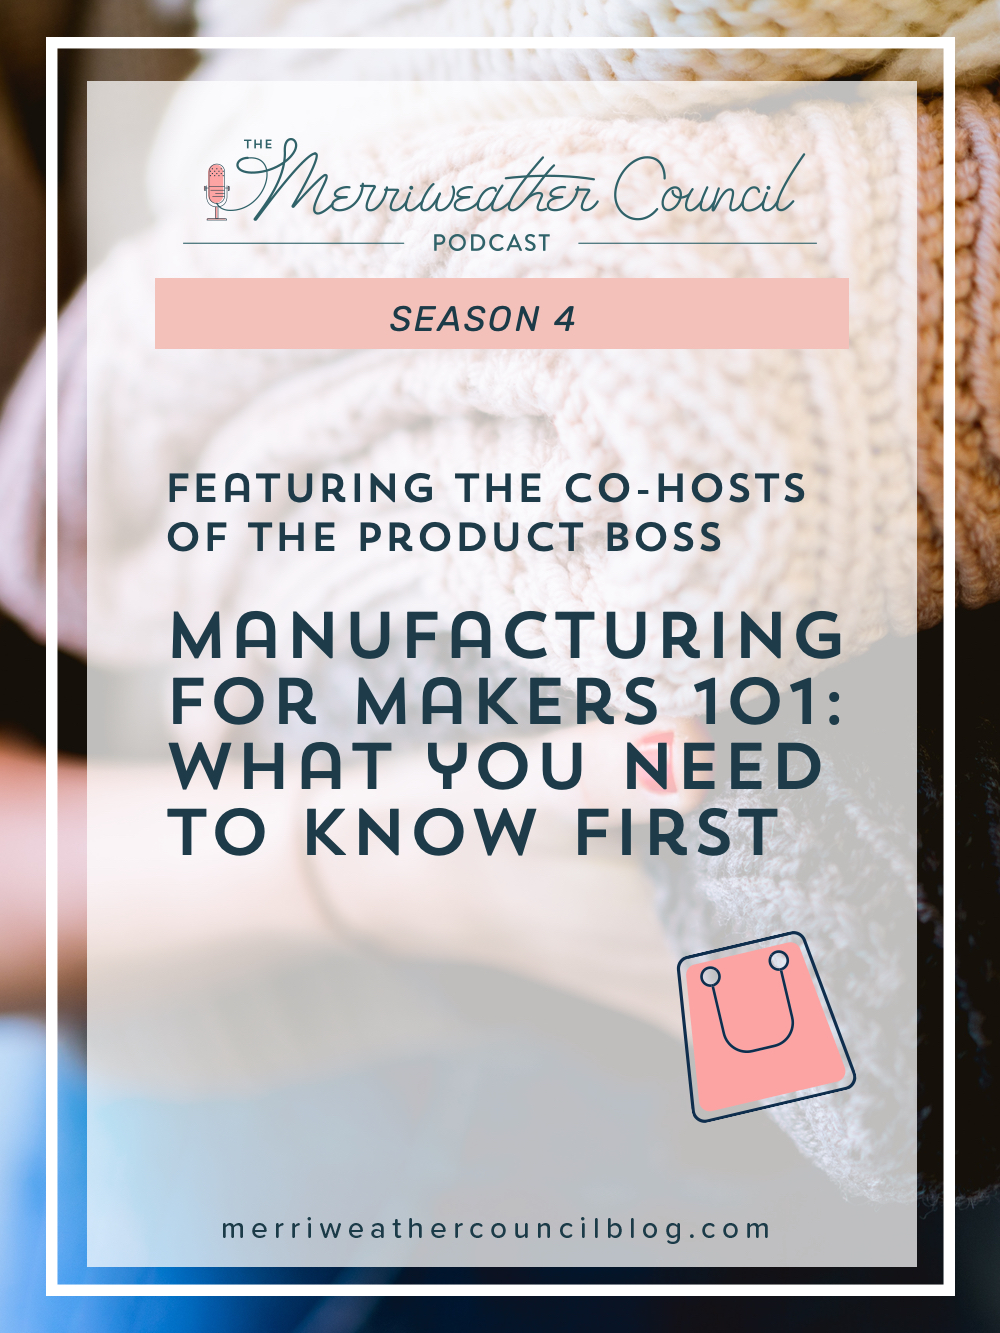 In this episode I chat with Jaqueline & Minna of The Product Boss about manufacturing and the ways handmade business owners can get outsourcing help. | The Merriweather Council Podcast